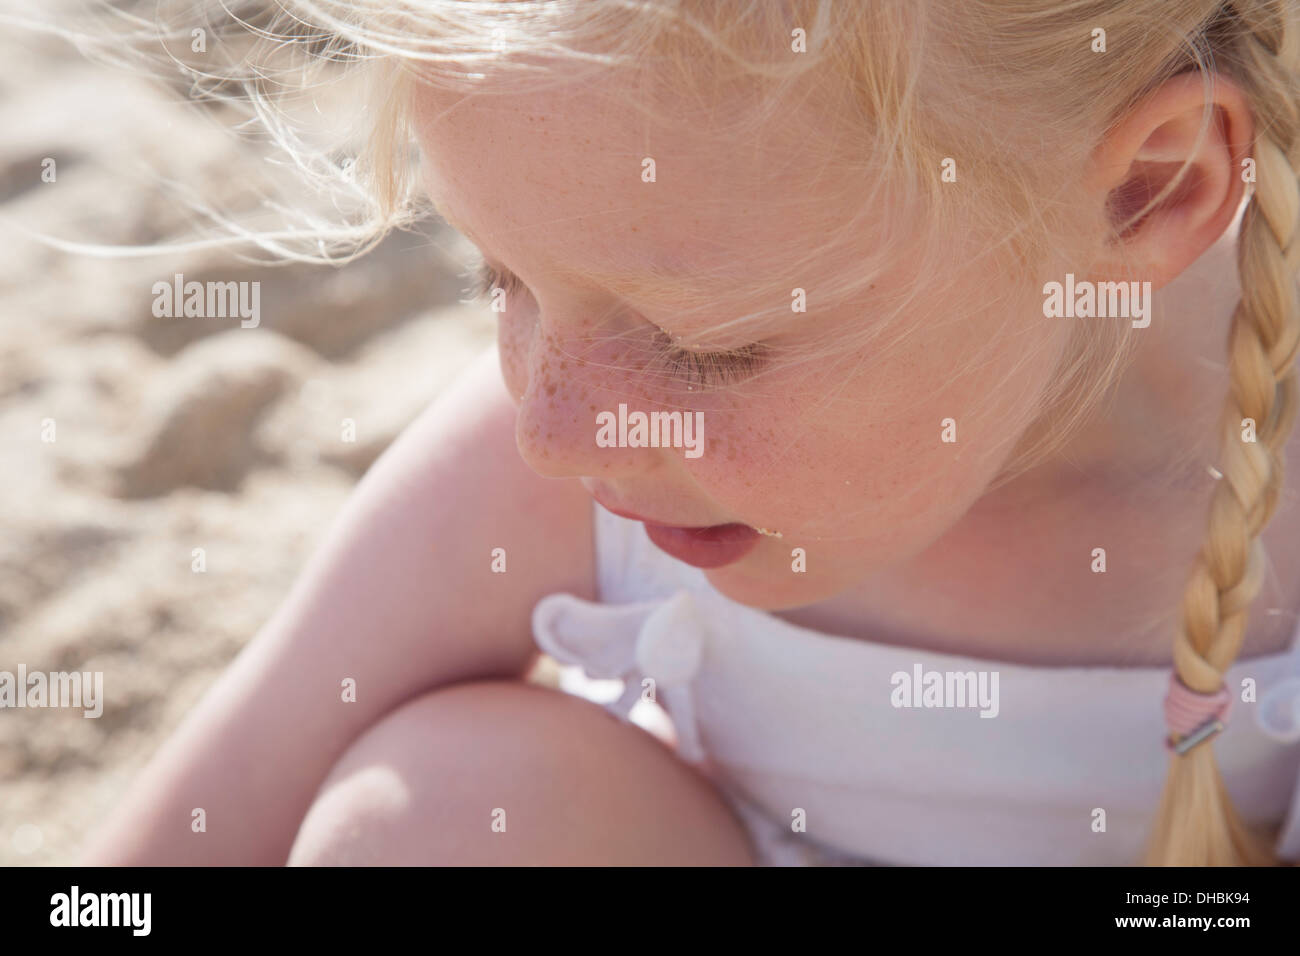 A young girl with blonde hair in pigtails on the beach. - Stock Image